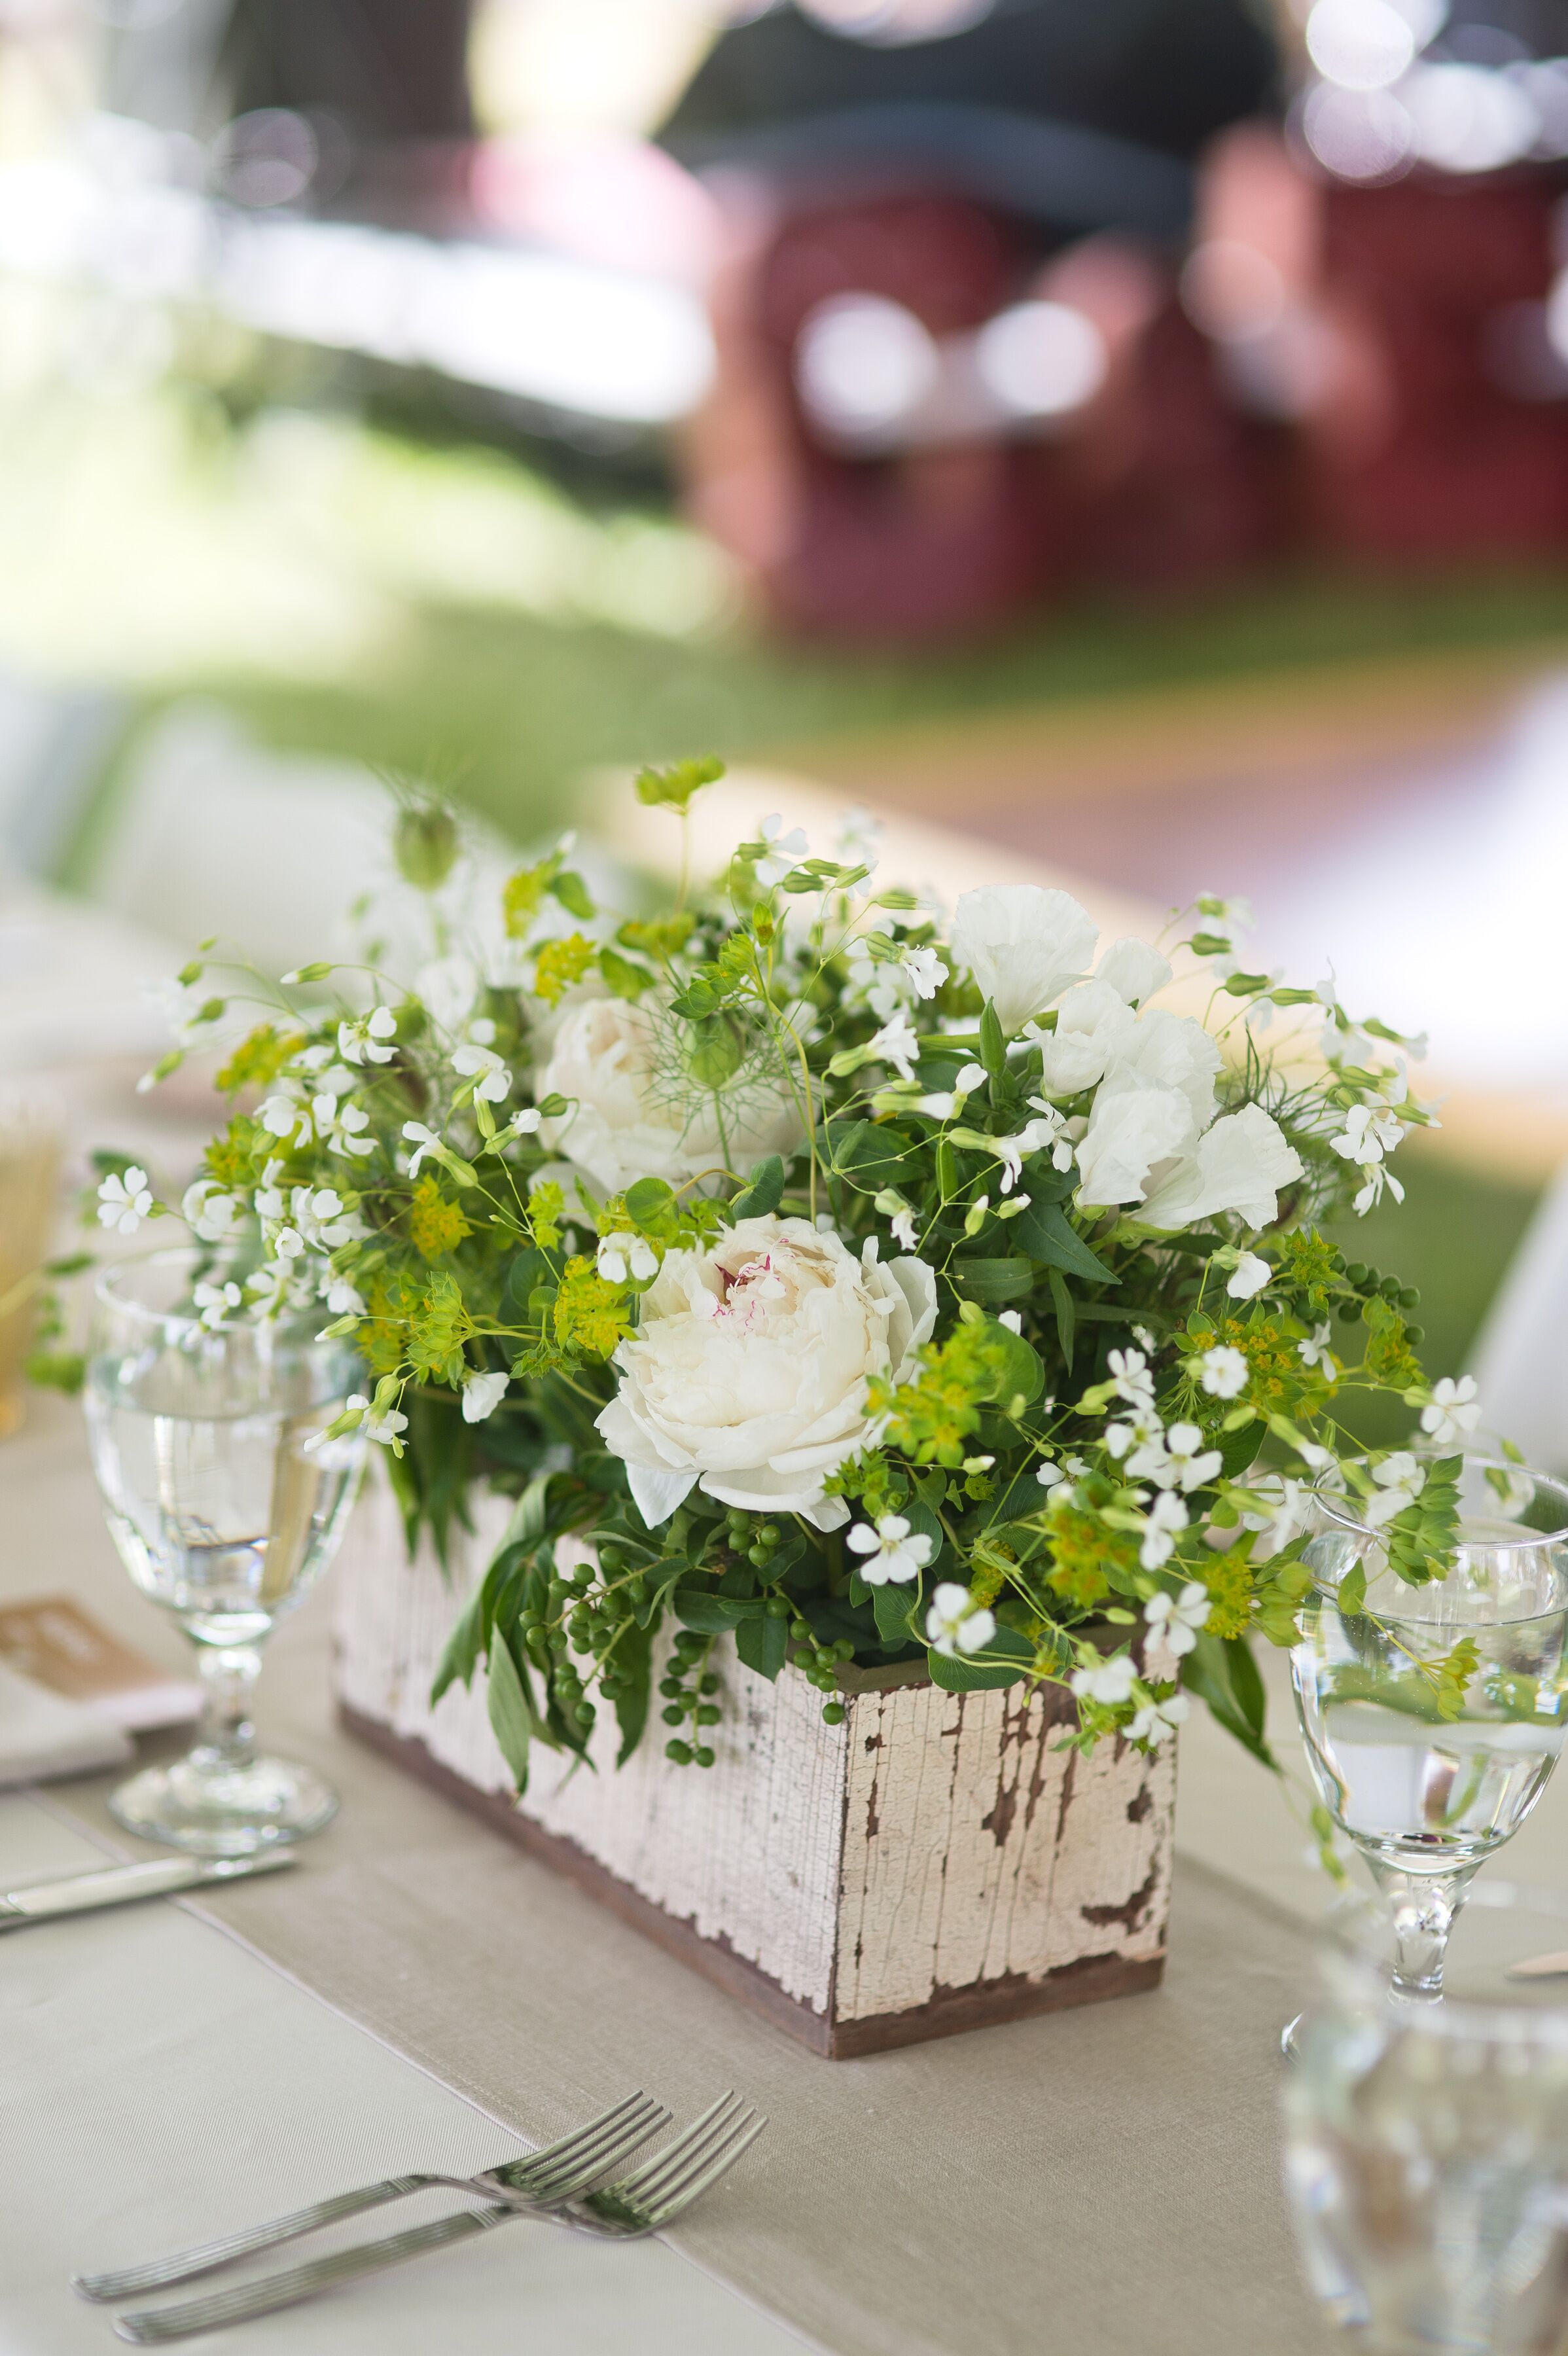 Rustic white and green centerpieces